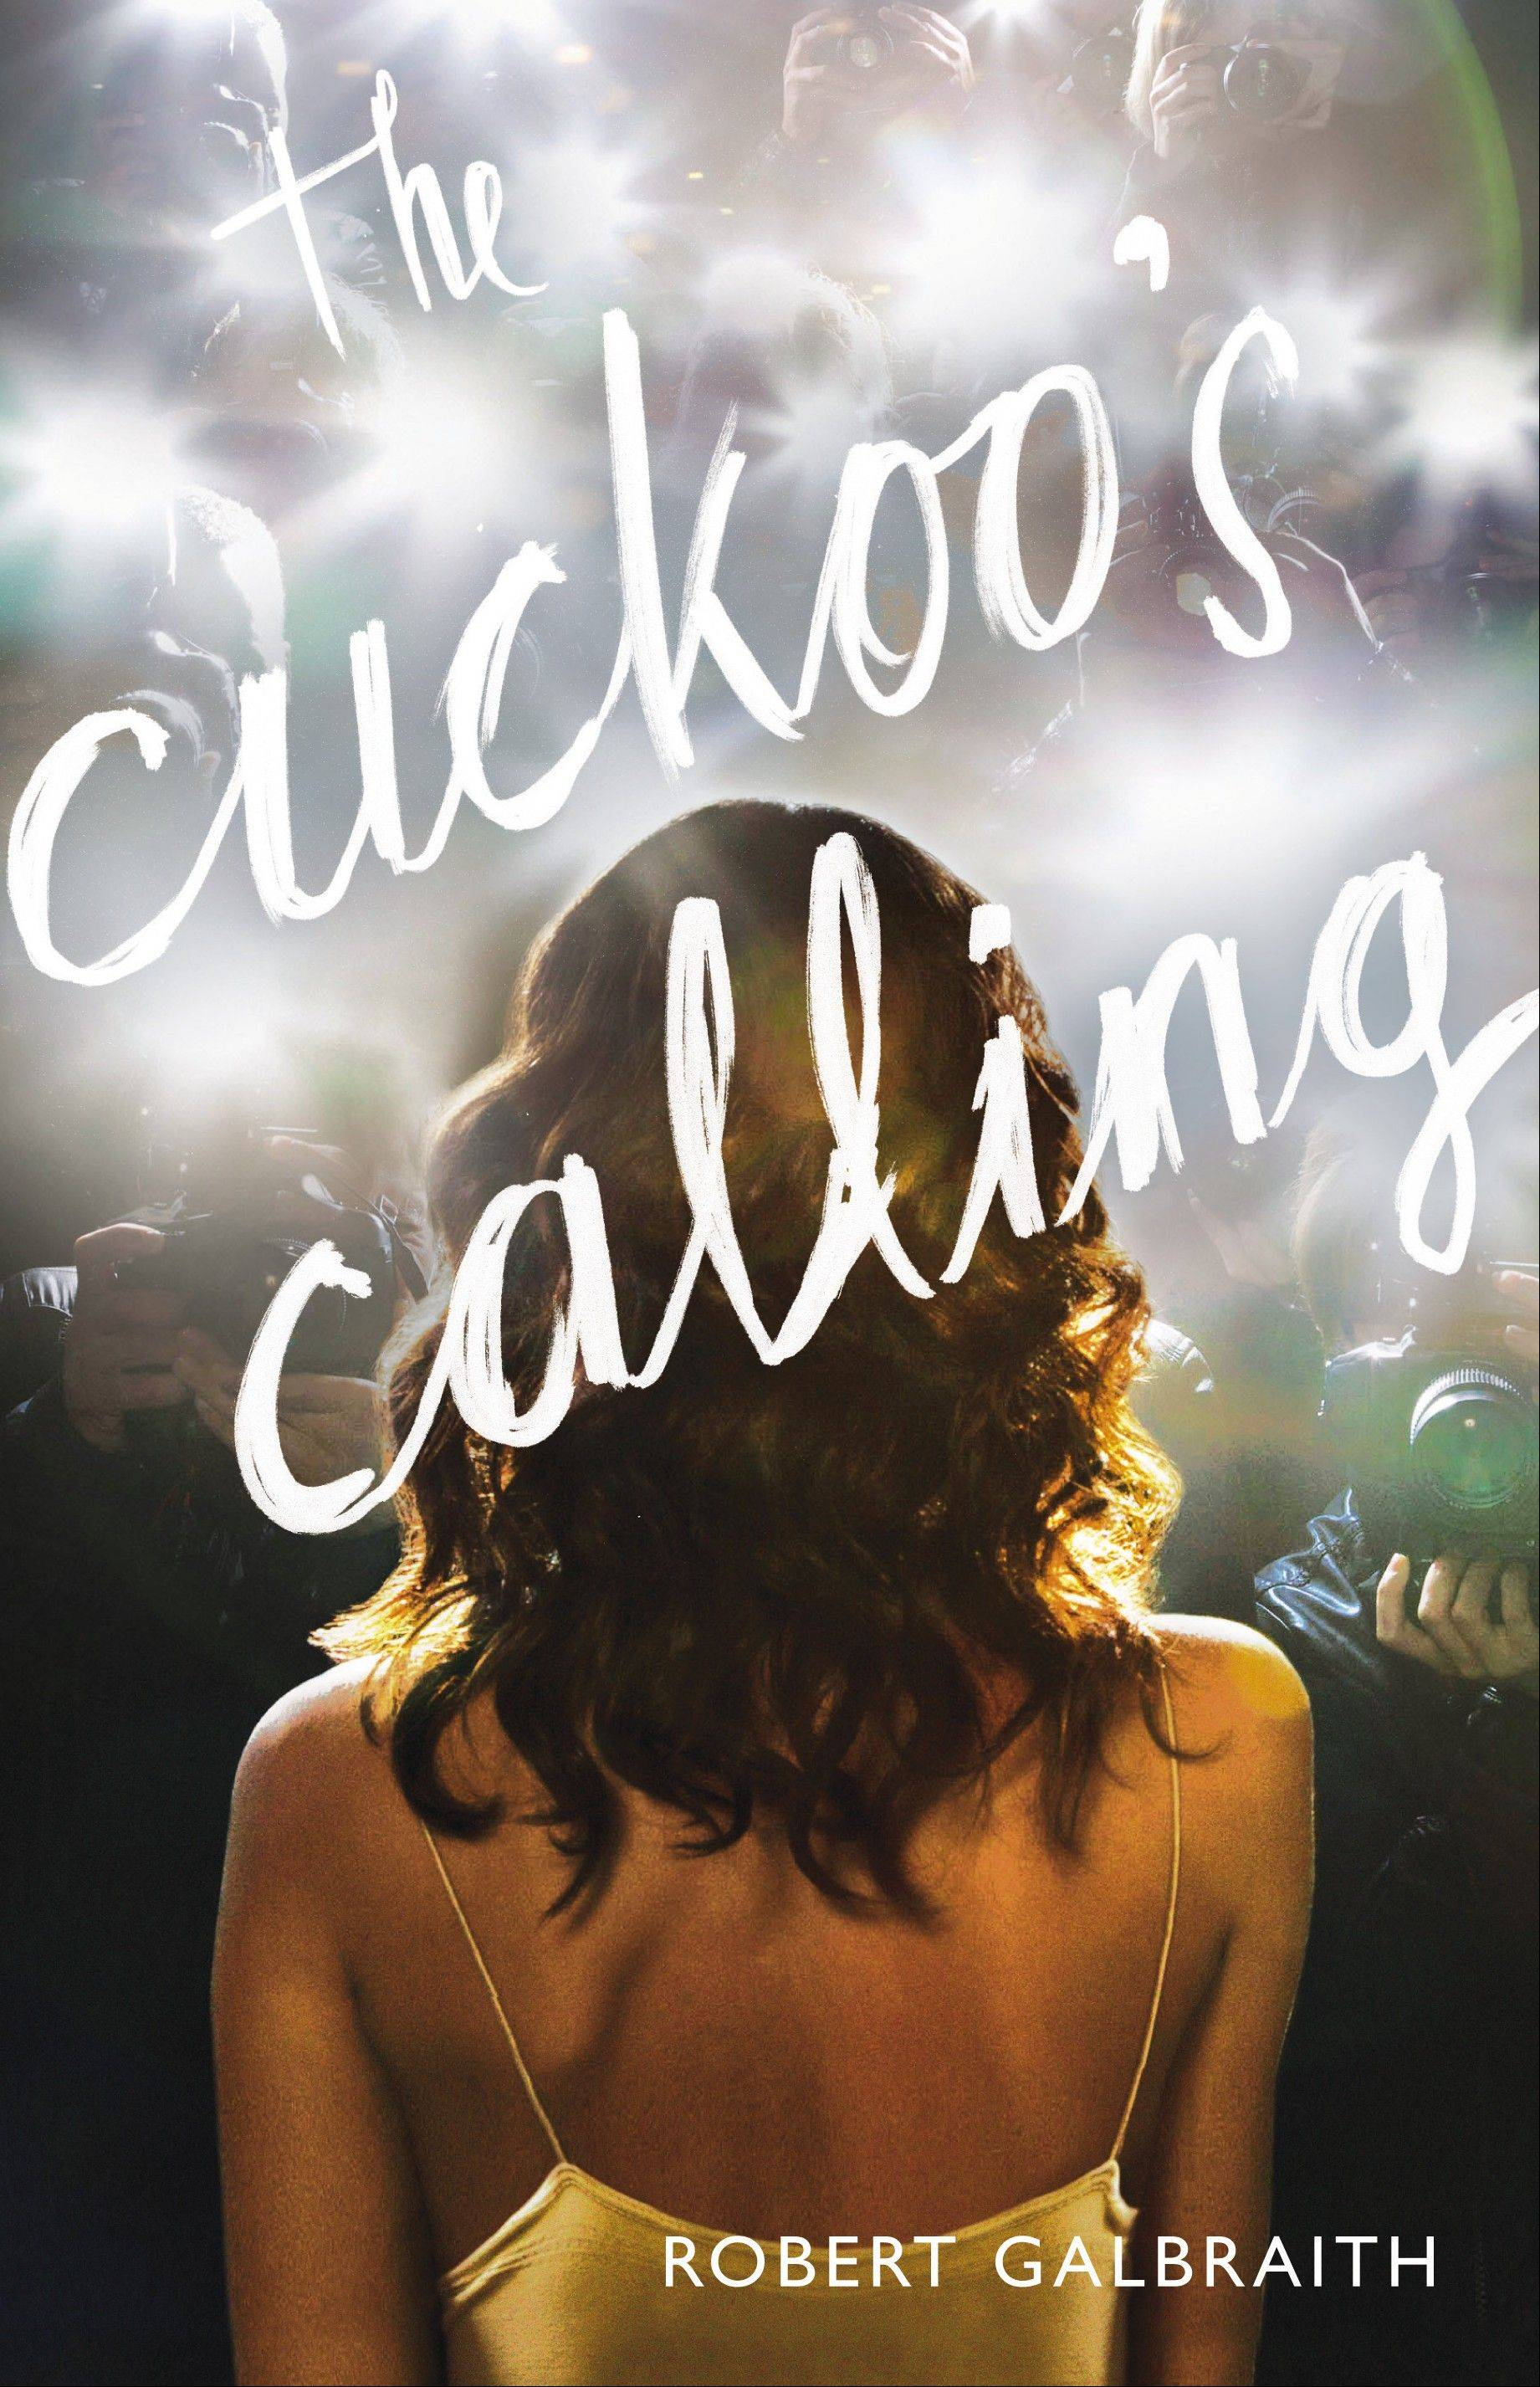 """The Cuckoo's Calling"" by Robert Galbraith, a pseudonym for author J.K. Rowling."